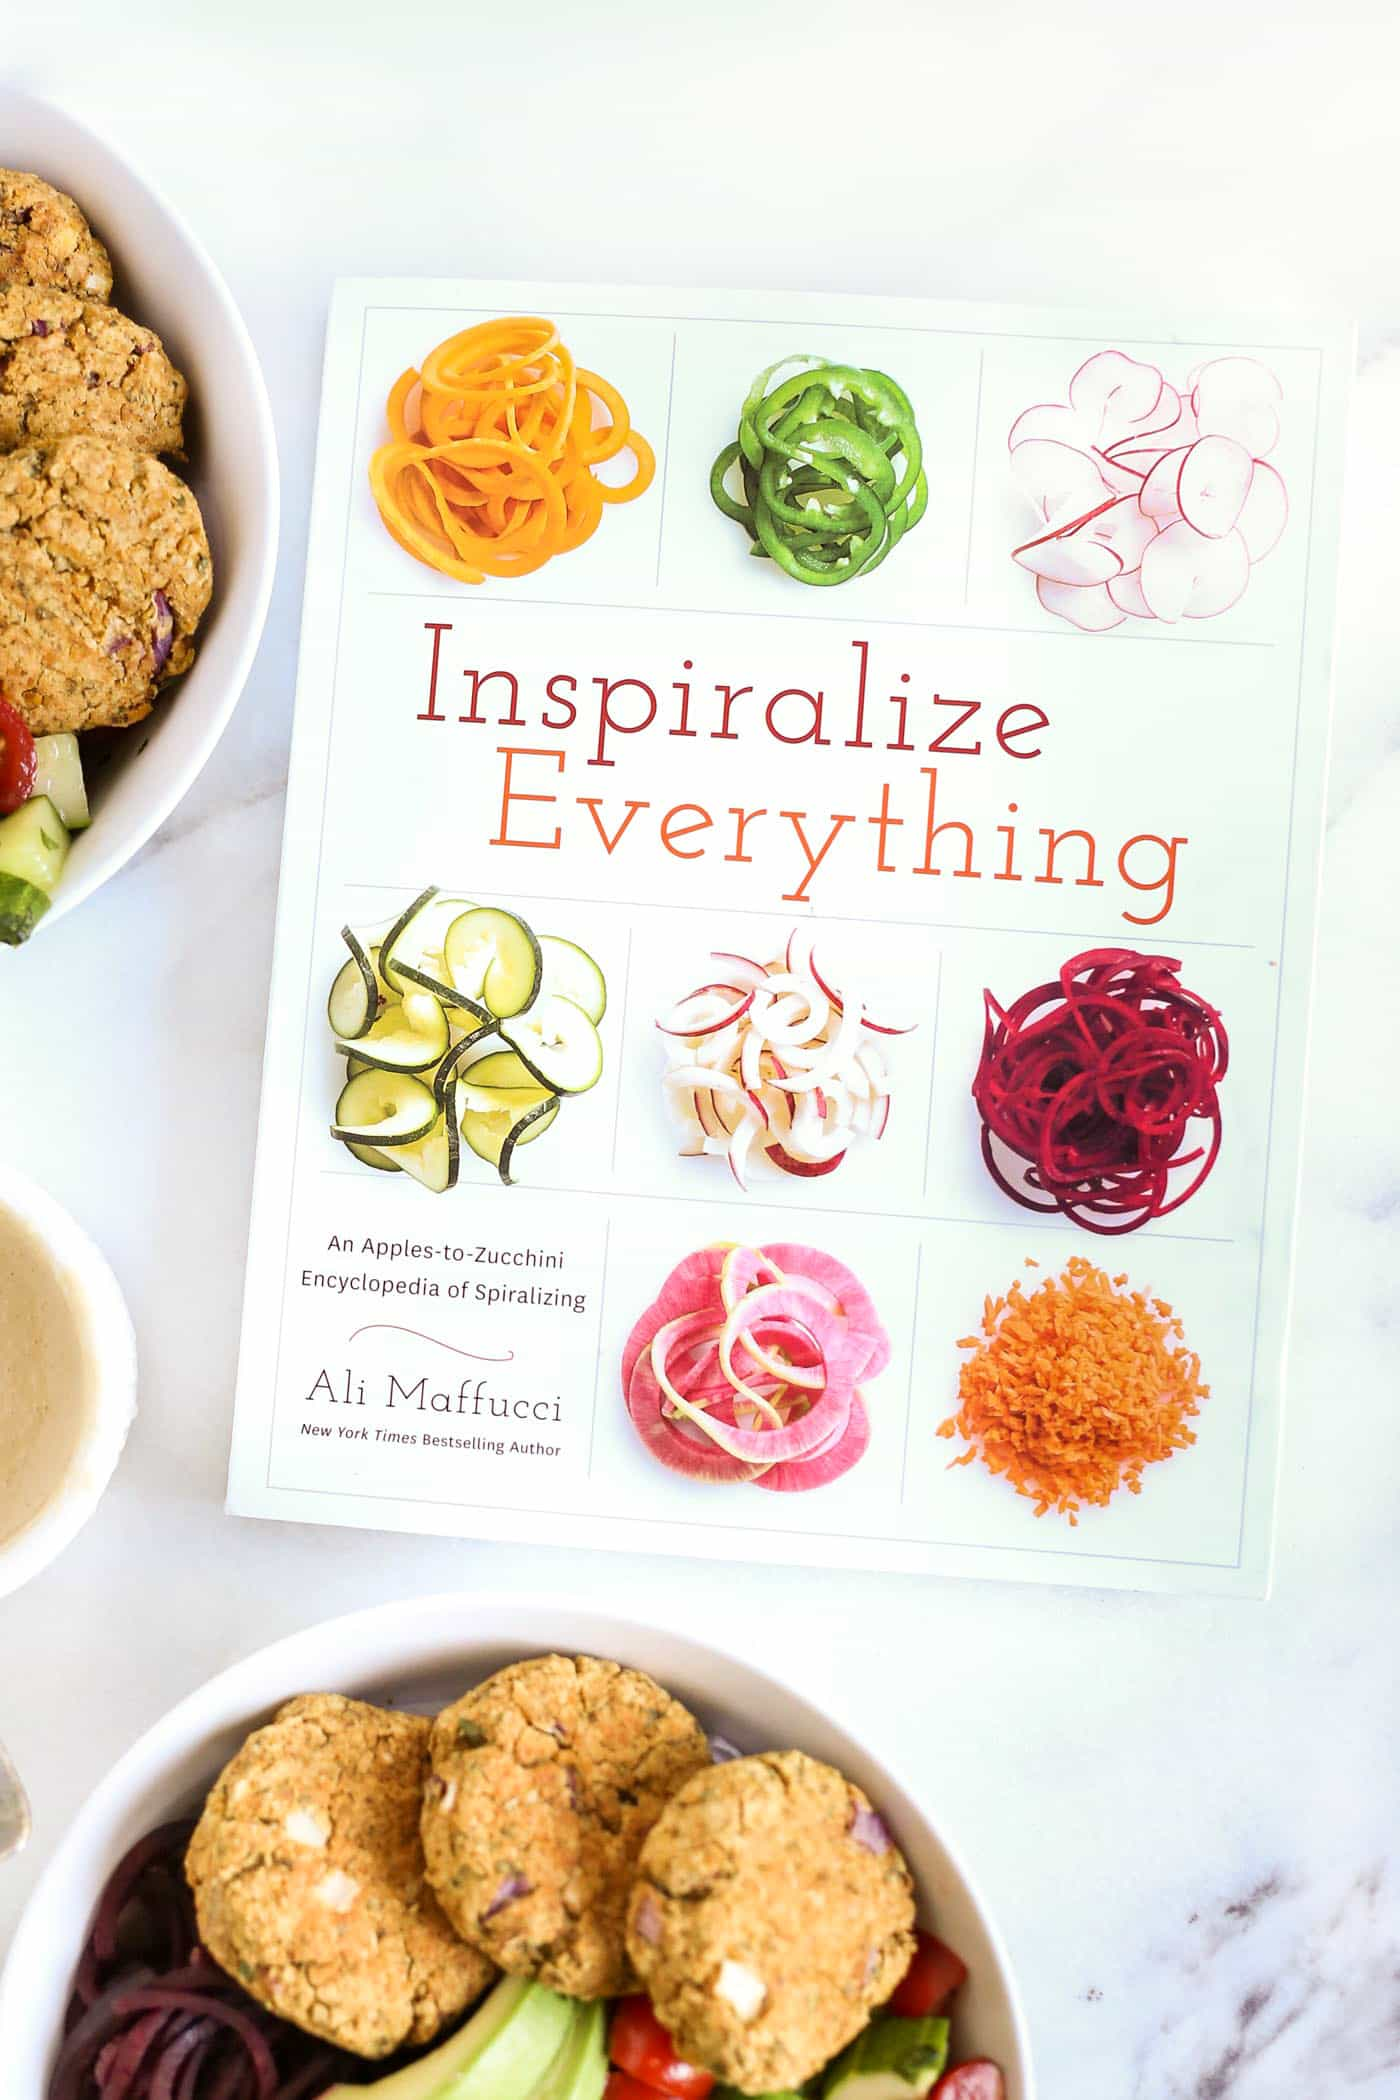 Inspiralize Everything -- the new cookbook from Inspiralized.com, full of amazing spiralized recipes!